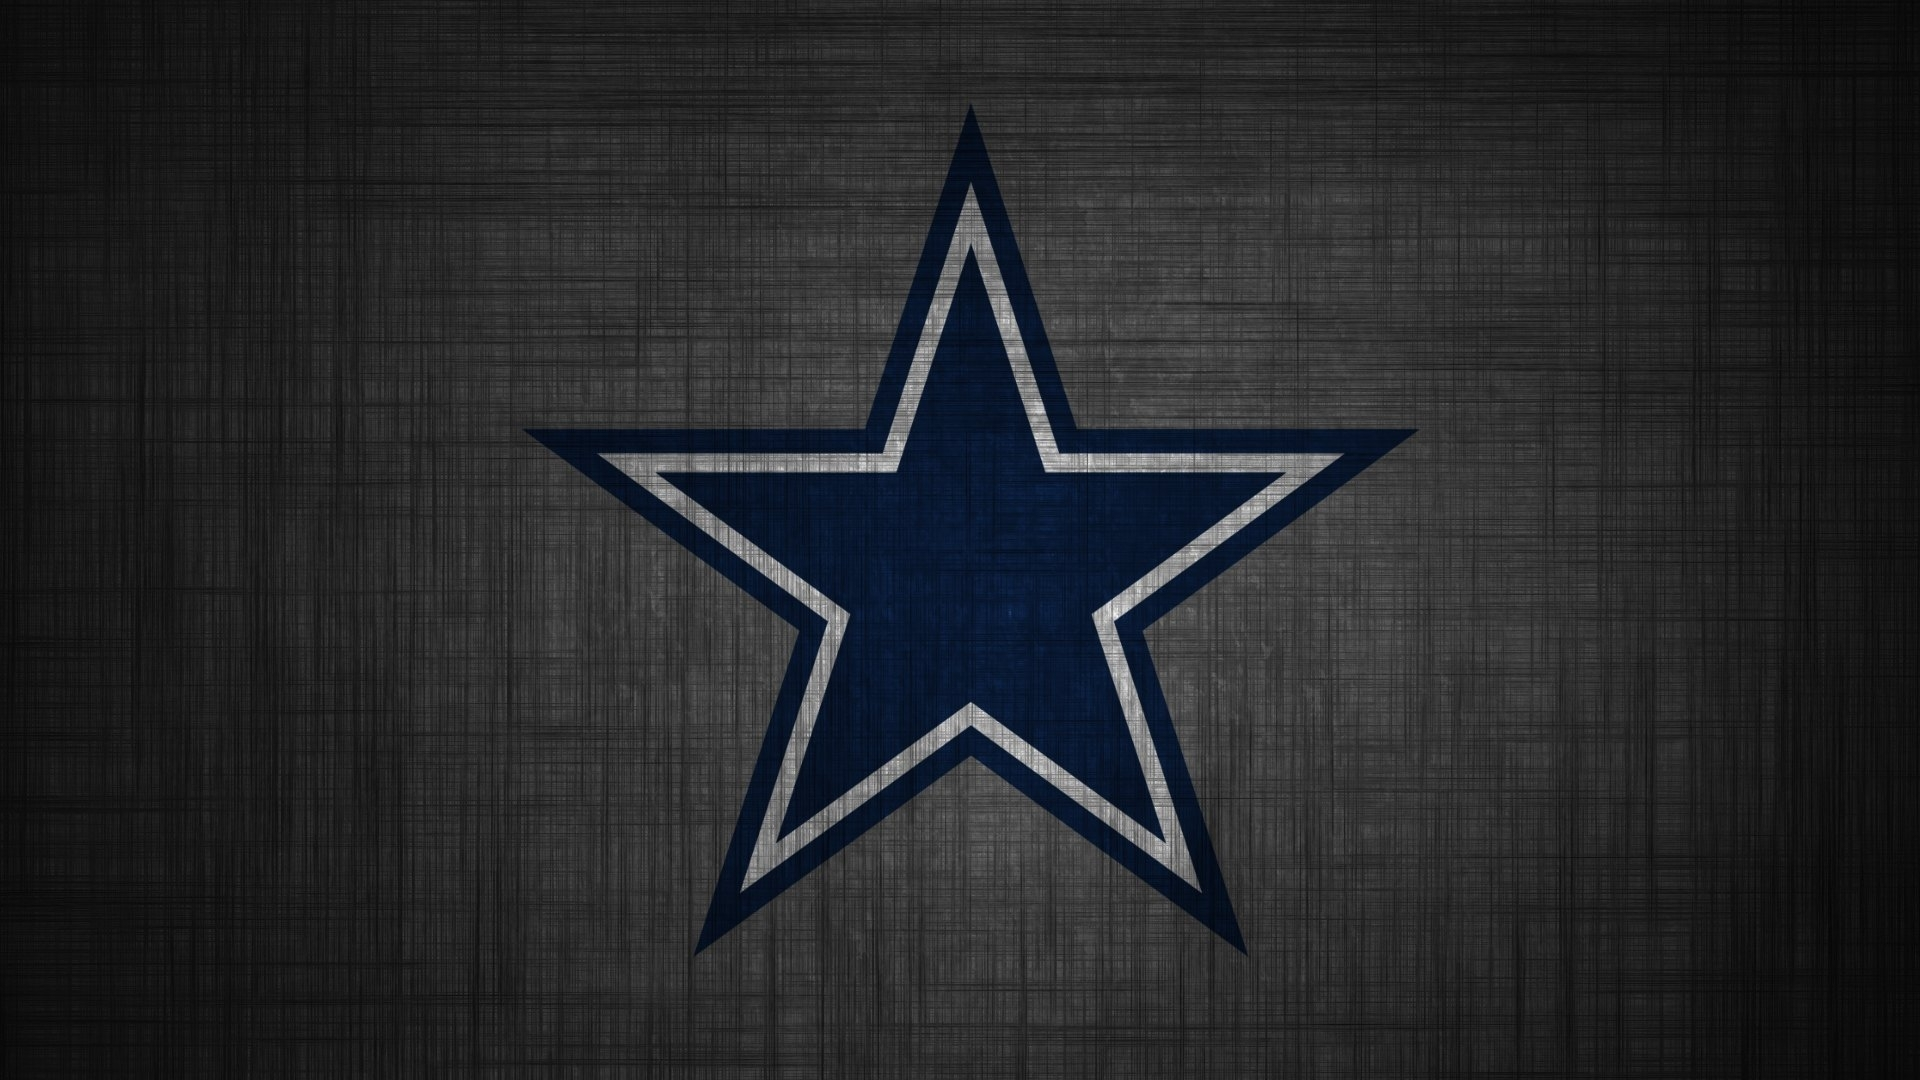 dallas cowboys desktop wallpaper 52891 1920x1080 px ~ hdwallsource